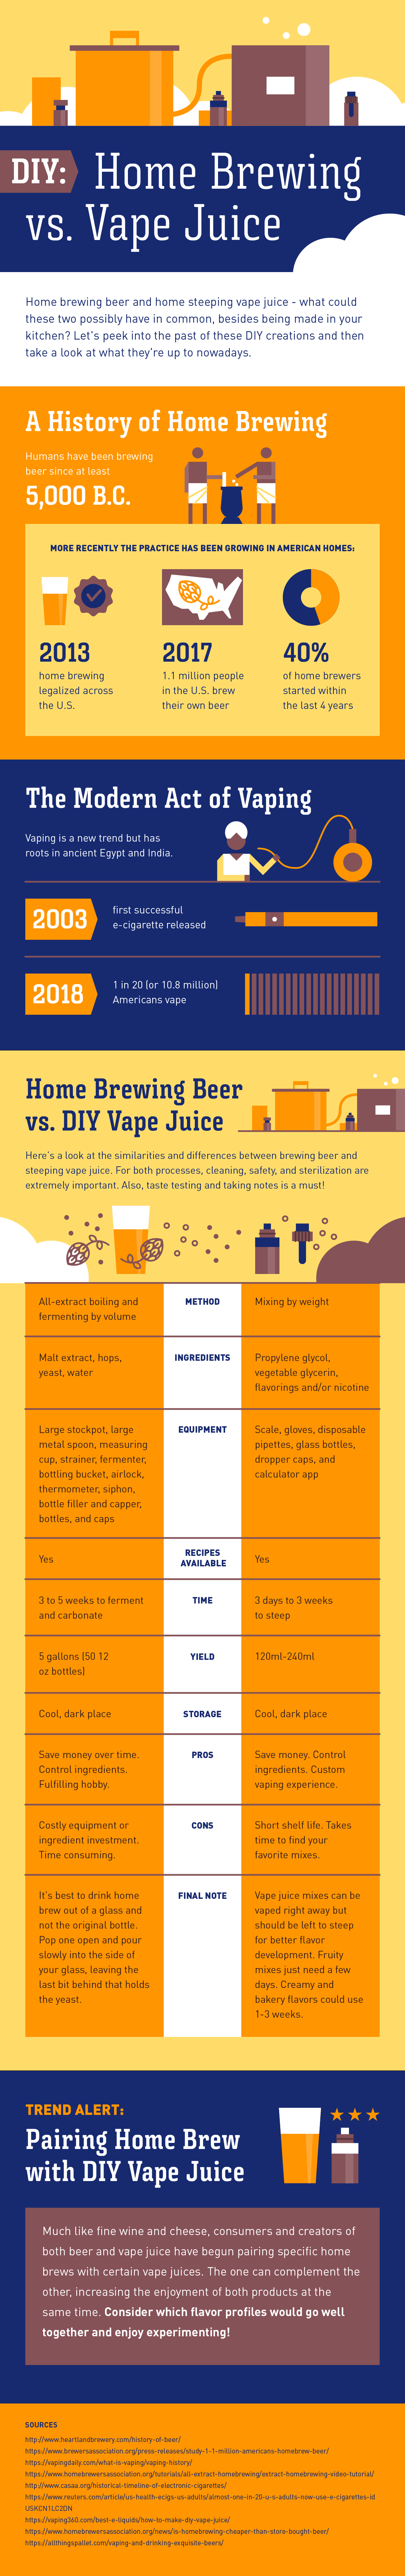 home beer brewing and DIY vape juicing